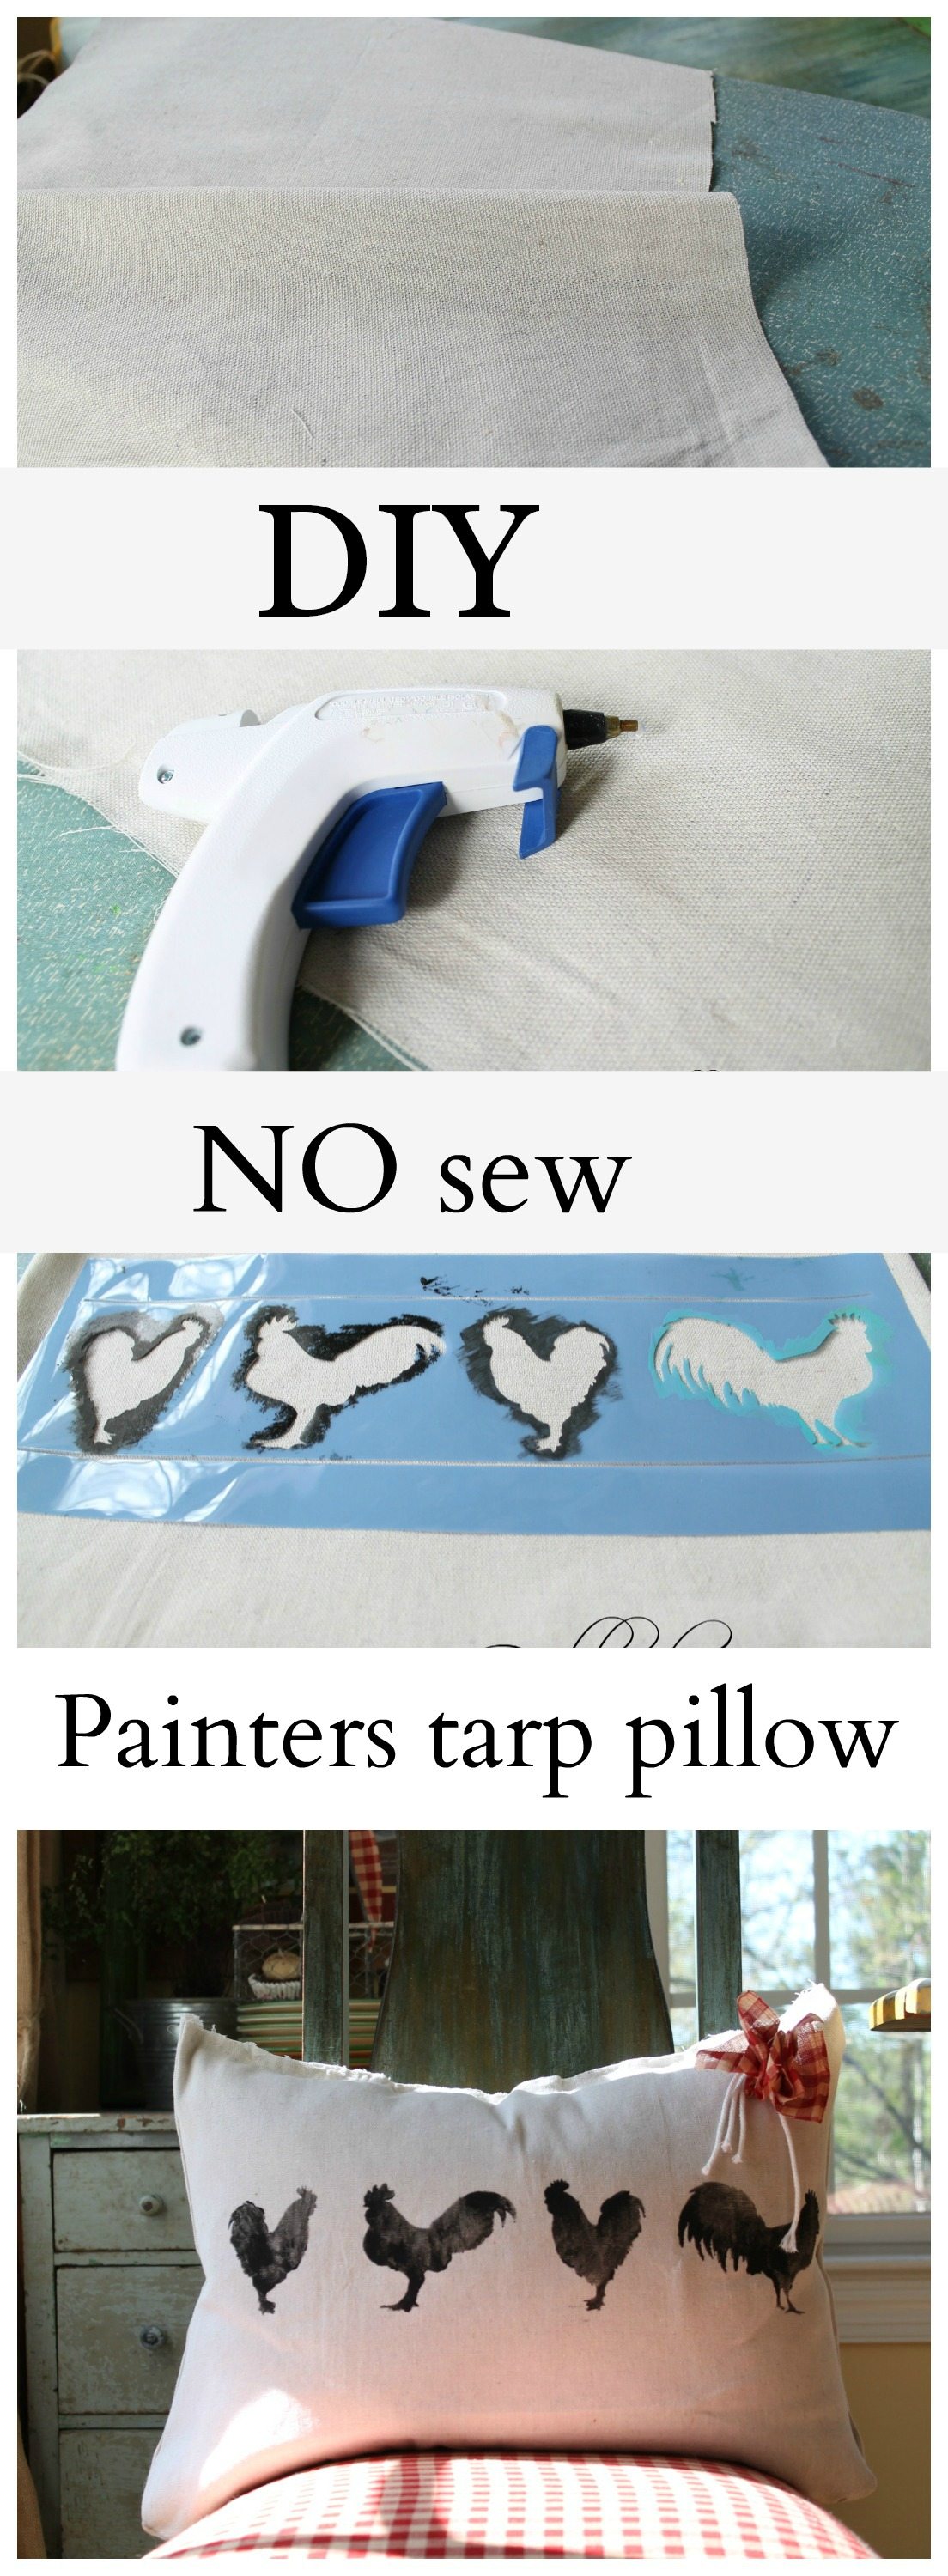 Diy Cute Pillow No Sew : How to make a no sew pillow out of painters tarps - Debbiedoos